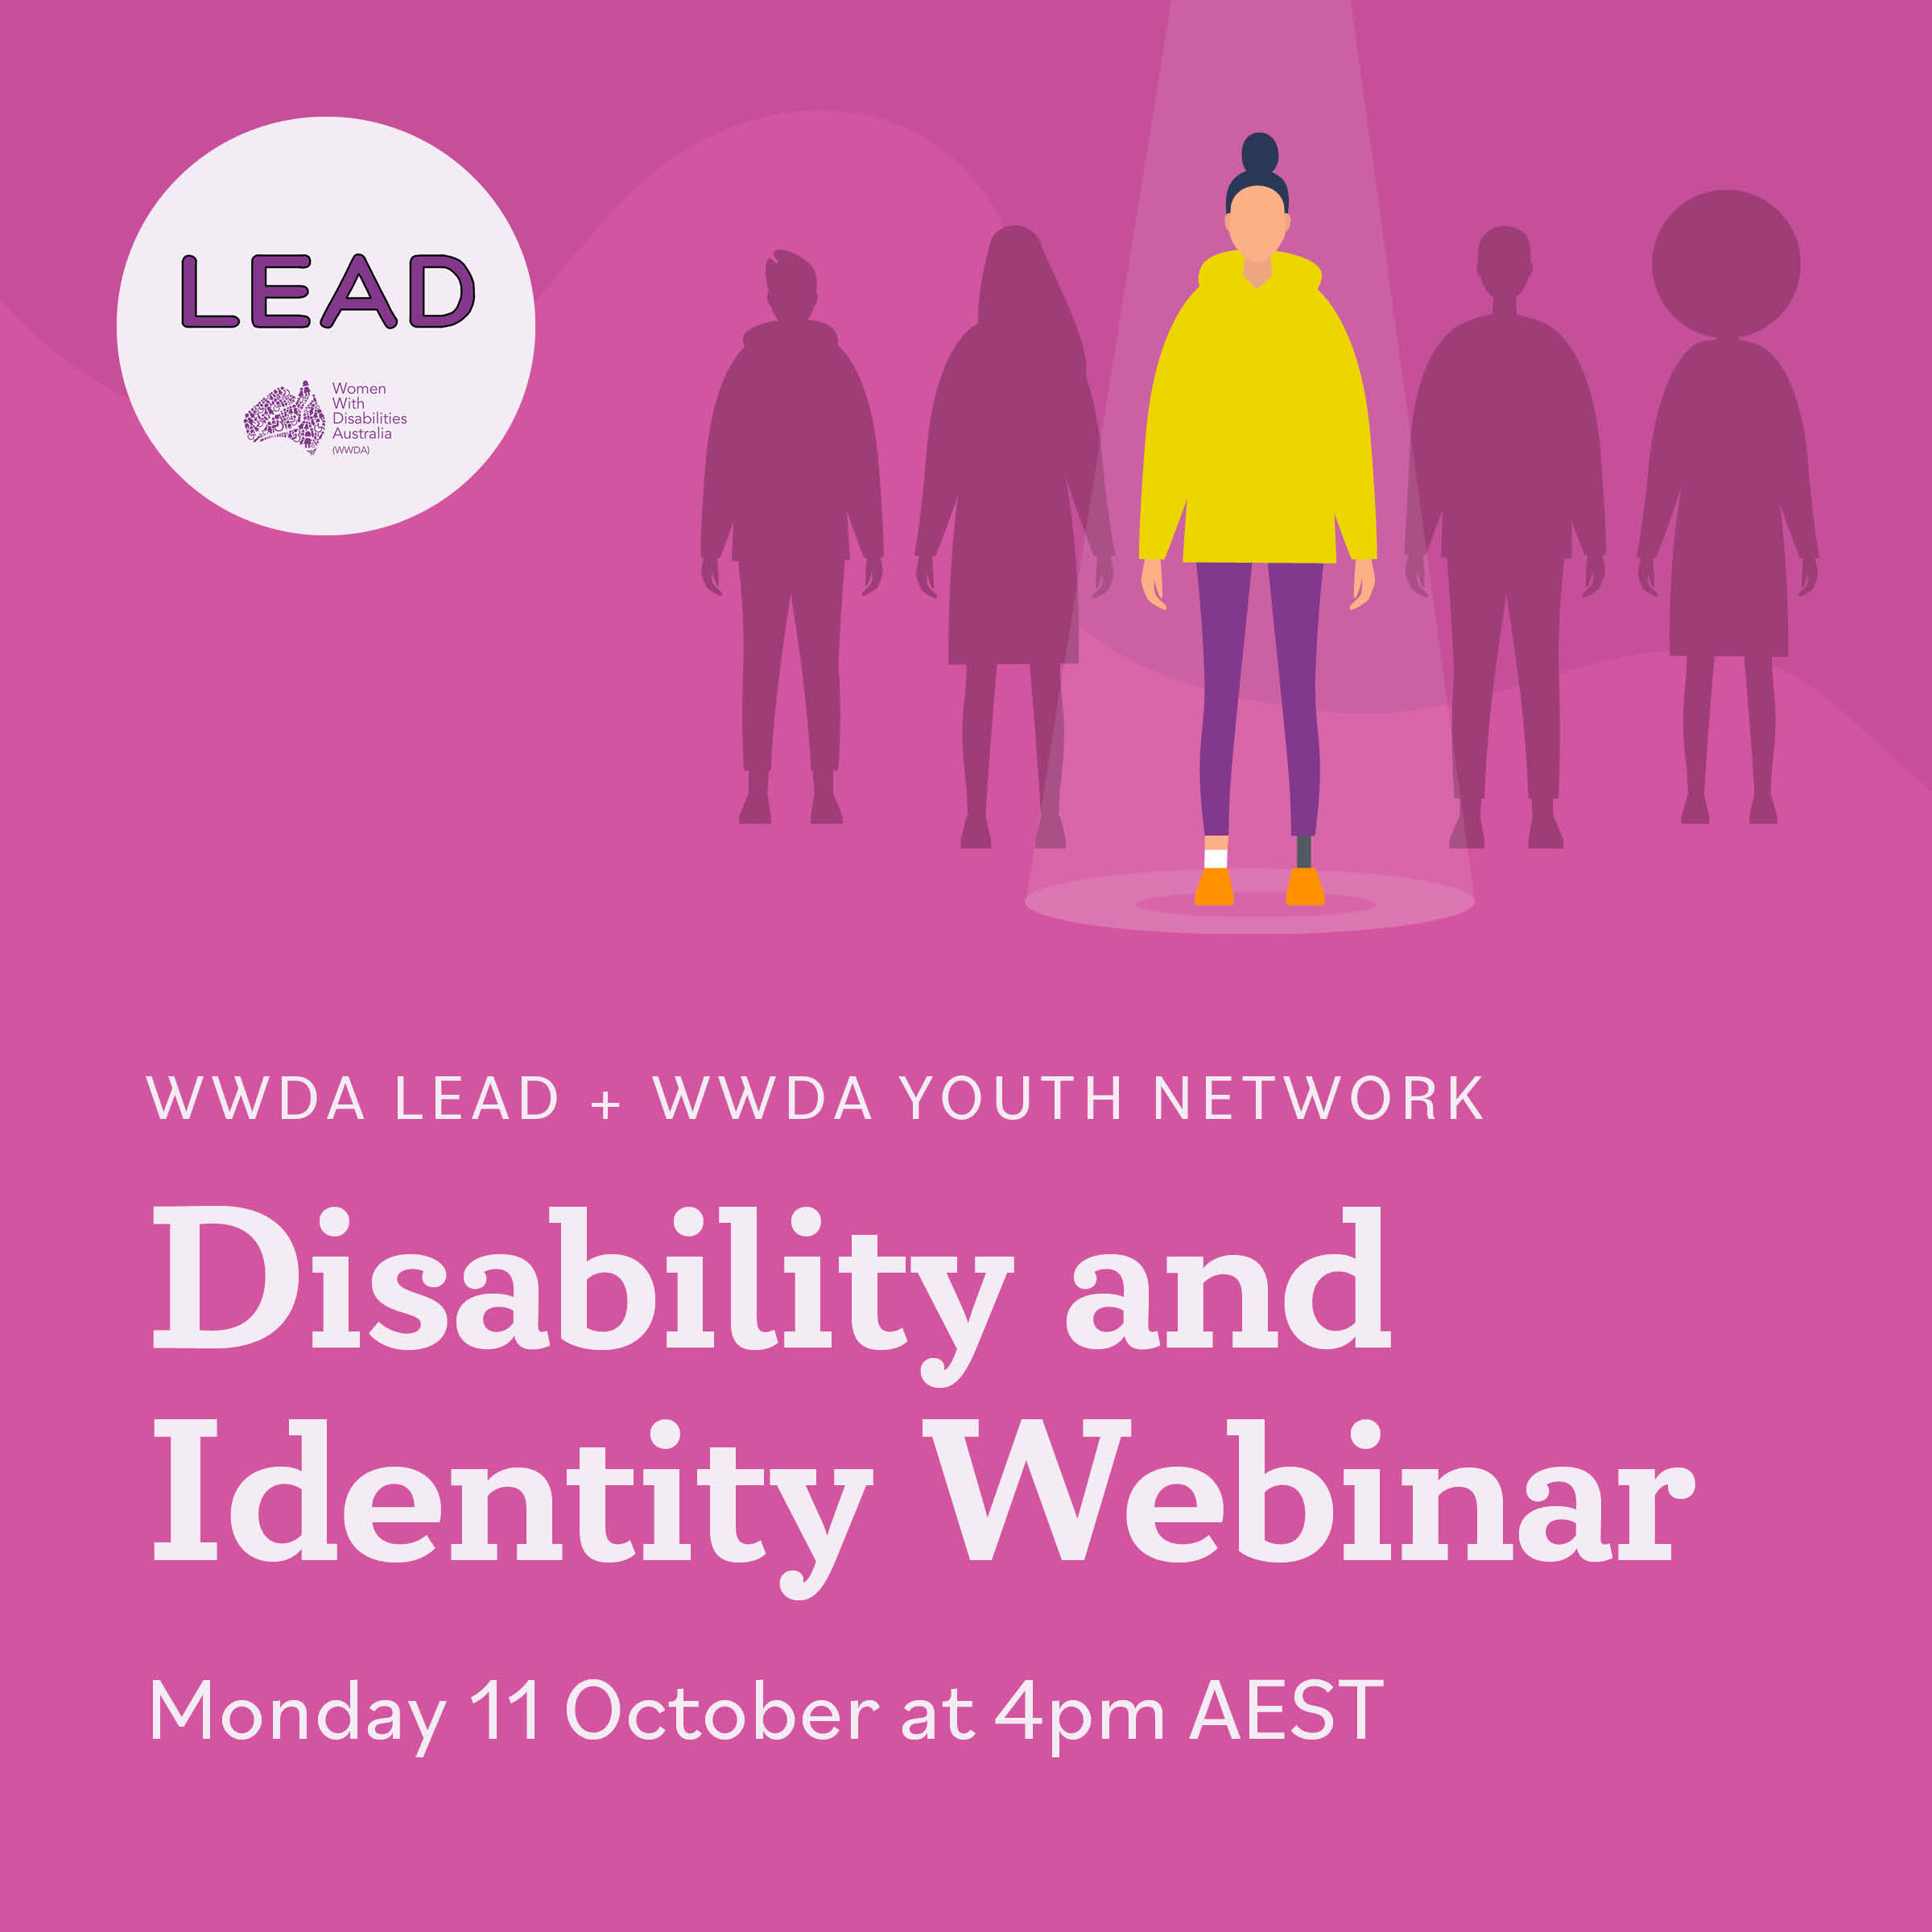 A bright pink background with an image of a woman in a yellow hoodie, purple pants, orange shoes with a prosthetic leg with her hair in a bun. On either side of her are two shadow outlines of people in a dark pink and a LEAD logo below them. Text reads: WWDA LEAD + WWDA YOUTH NETWORK, Disability and Identity Webinar, Monday 11 October at 4pm AEST.]